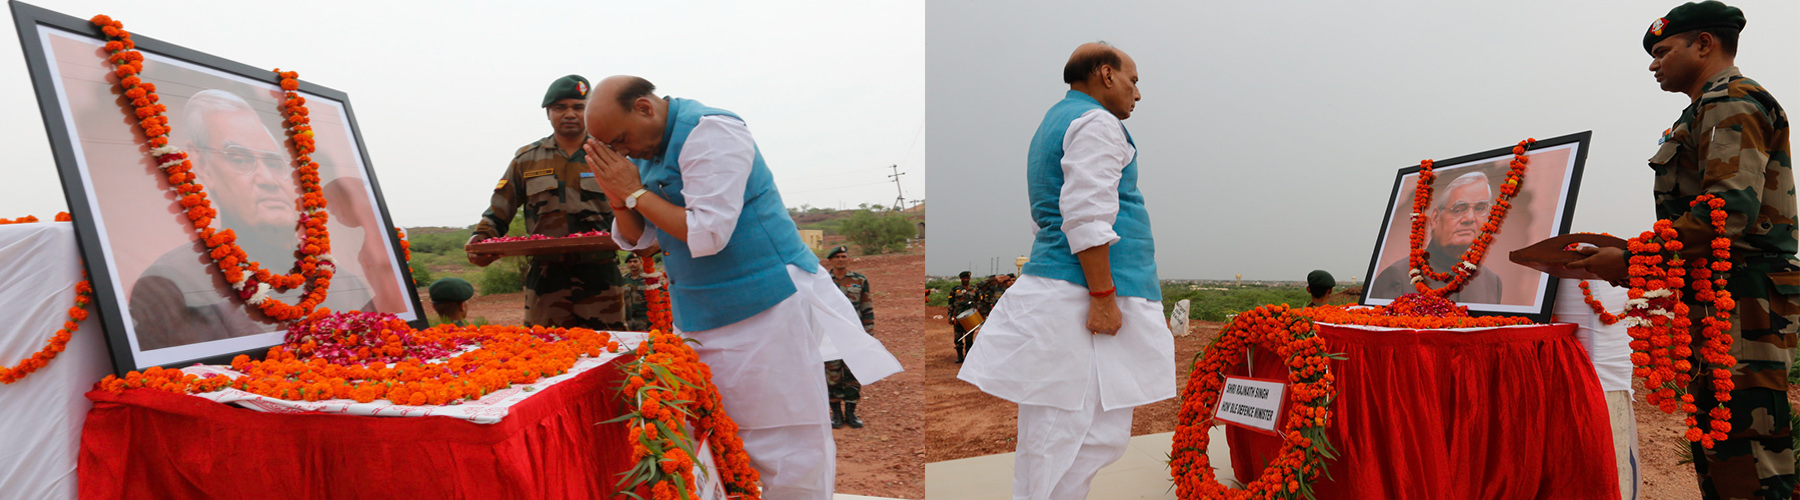 Raksha Mantri Shri Rajnath Singh paying homage at Pokhran to former Prime Minister Shri Atal Behari Vajpayee on his first death anniversary on Friday, August 16, 2019. India had conducted nuclear tests in 1998 at Pokhran under the leadership of Shri Vajpa